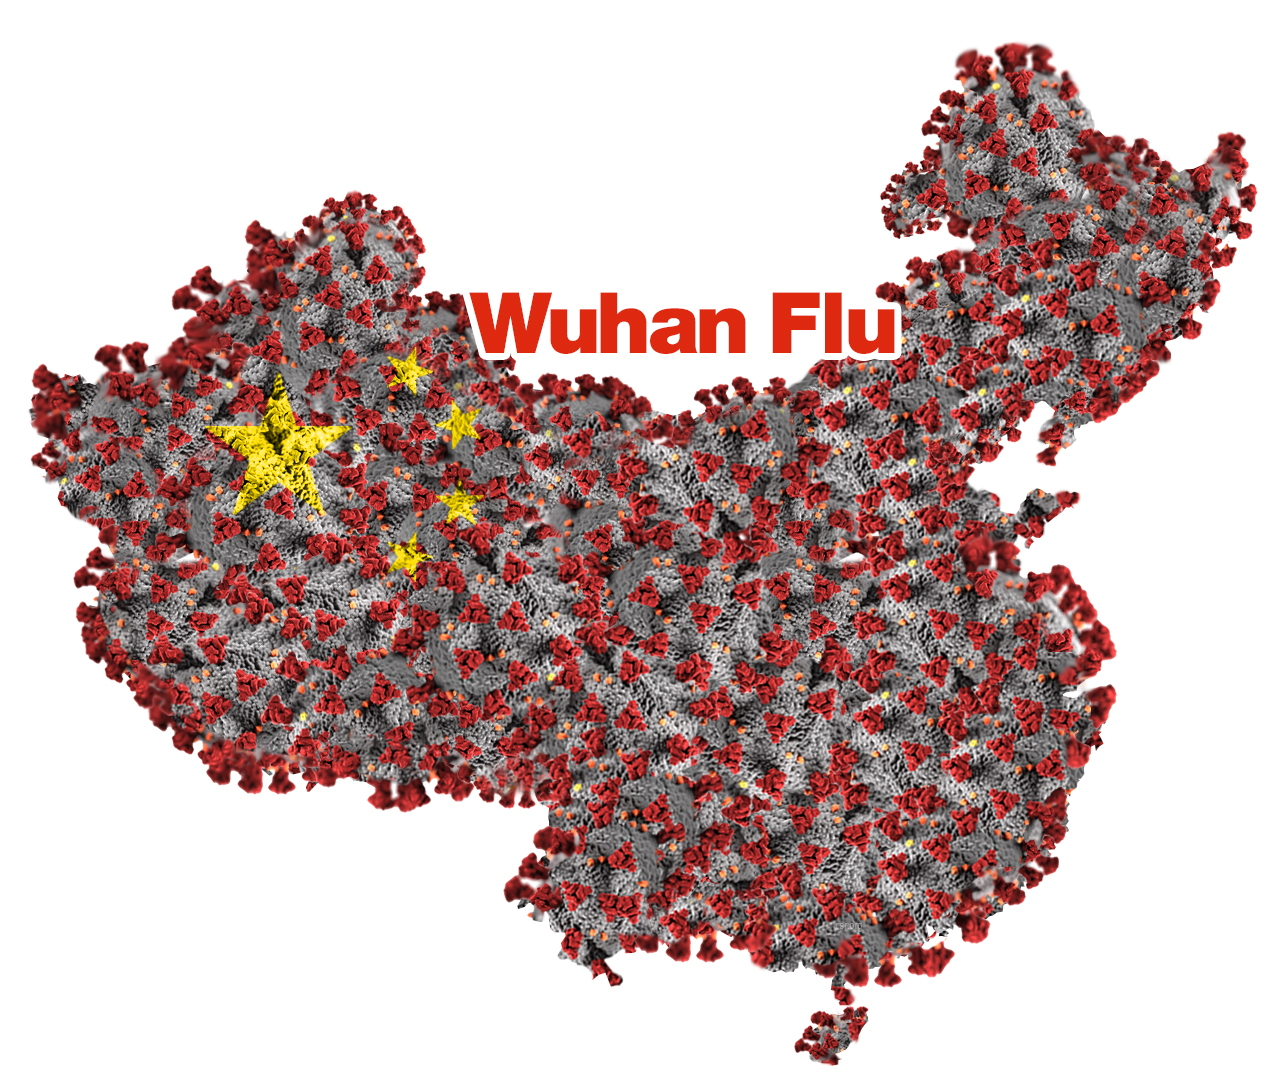 Wuhan flu map